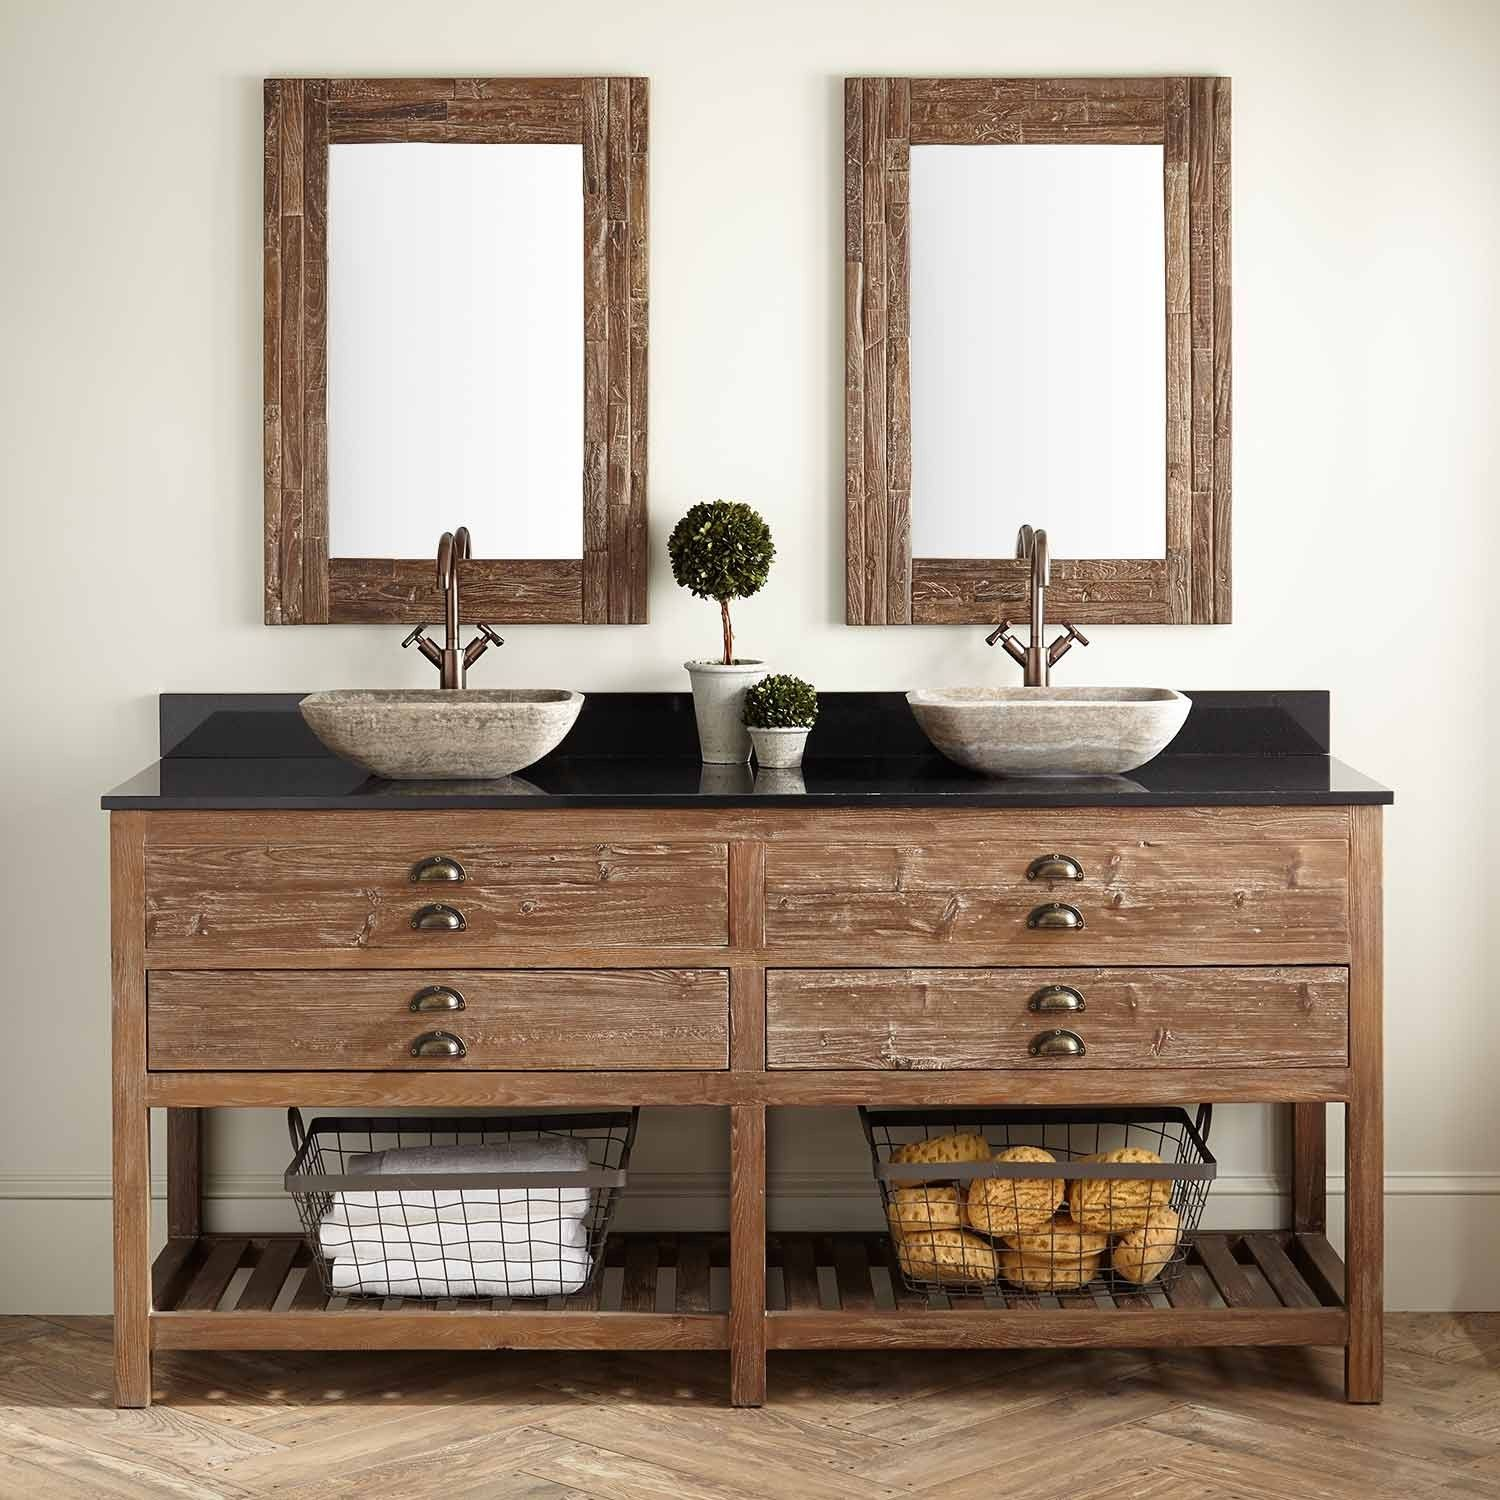 72 Benoist Reclaimed Wood Double Vessel Sink